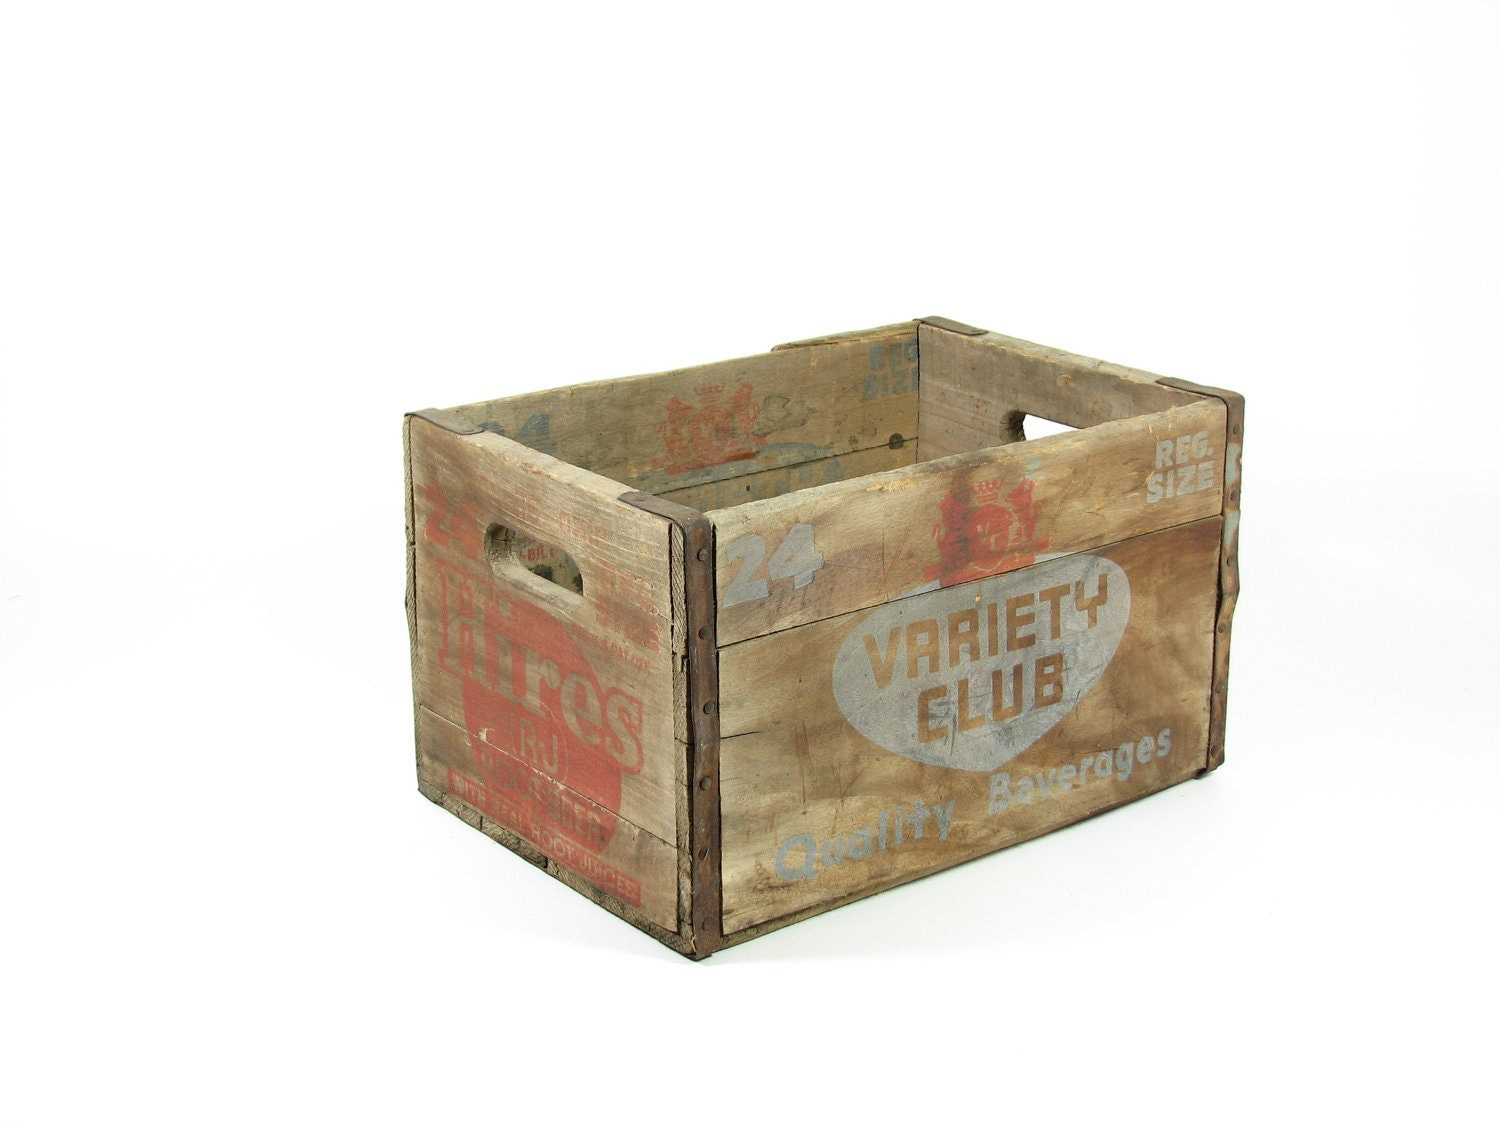 Vintage Wood Crate Wooden Crate Box Bin Hires By